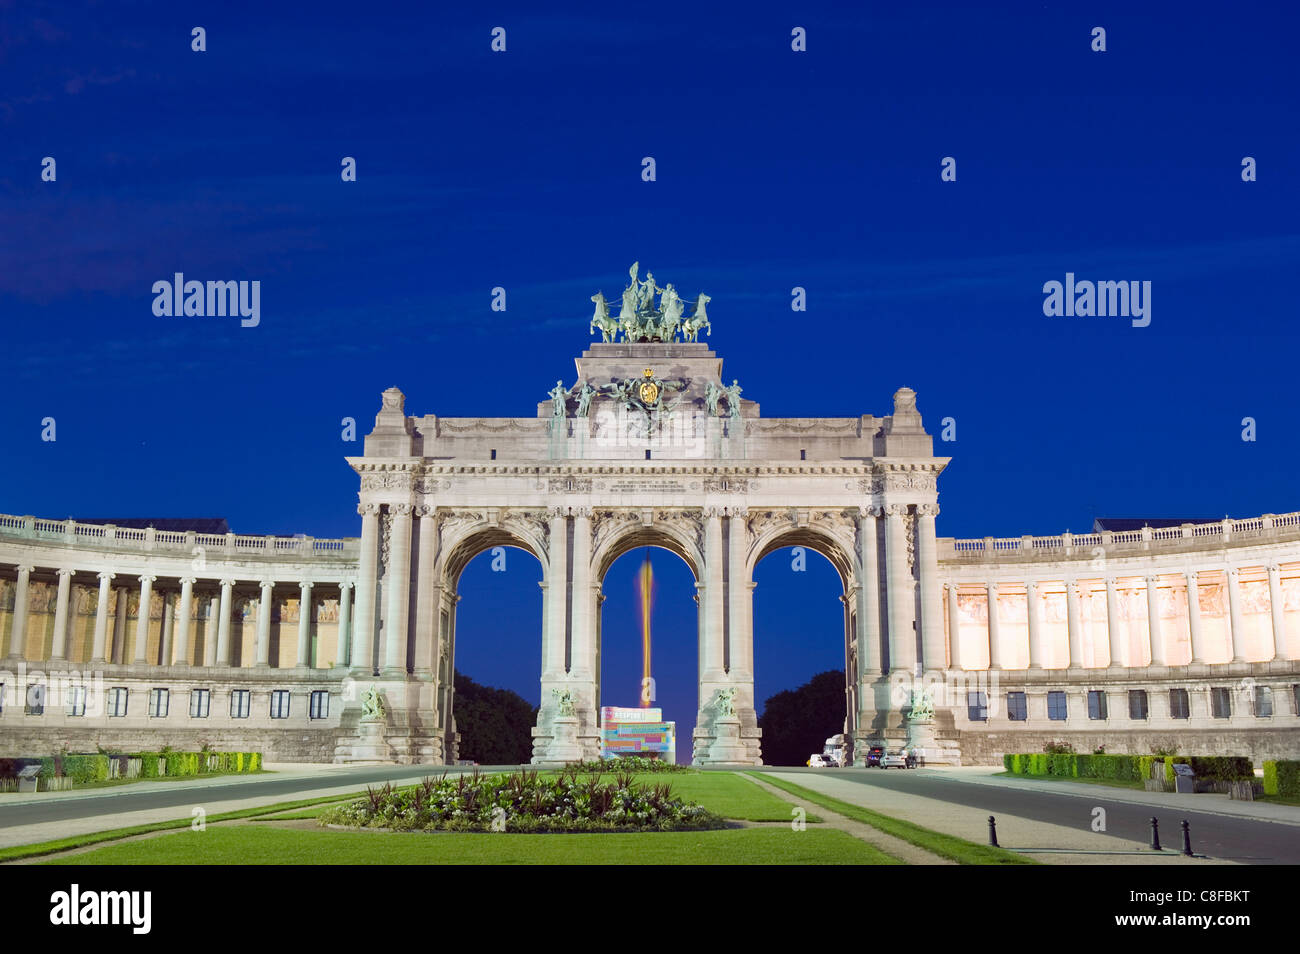 Arcade du Cinquantenaire, arch built in 1880 to celebrate 50 years of Belgian independence, Brussels, Belgium - Stock Image